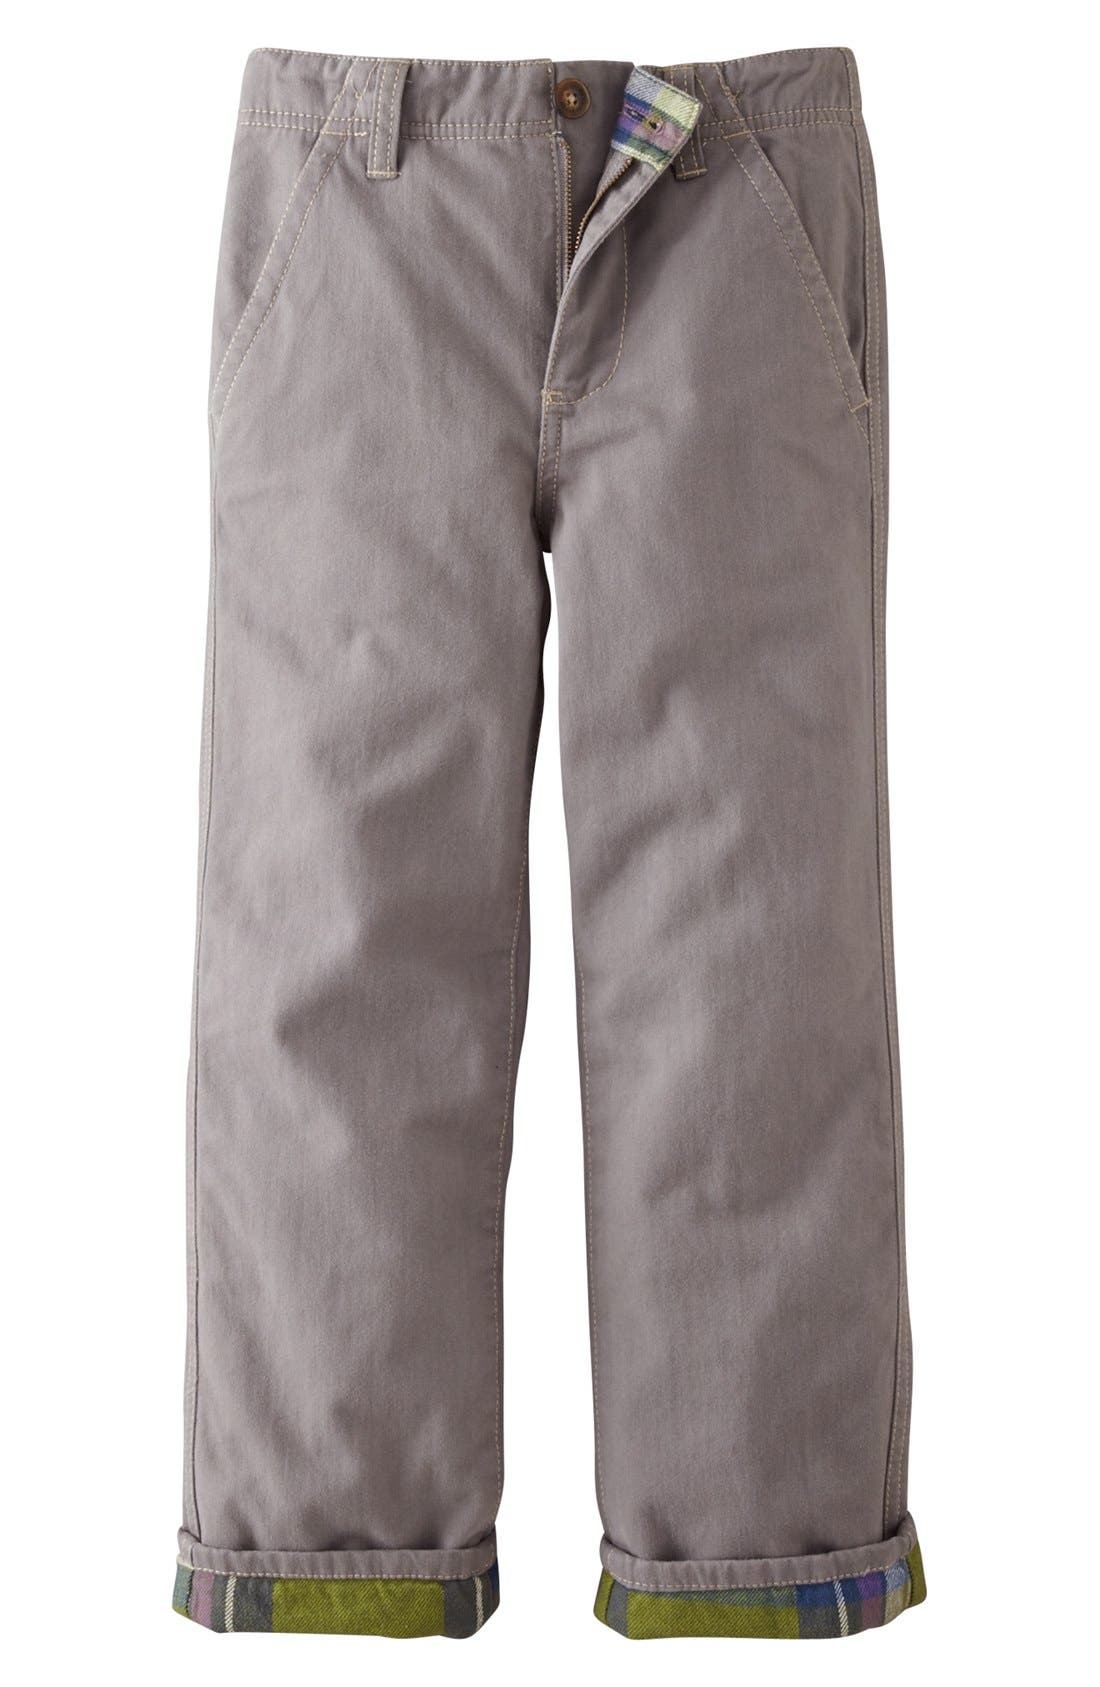 Main Image - Mini Boden Lined Chinos (Toddler Boys)